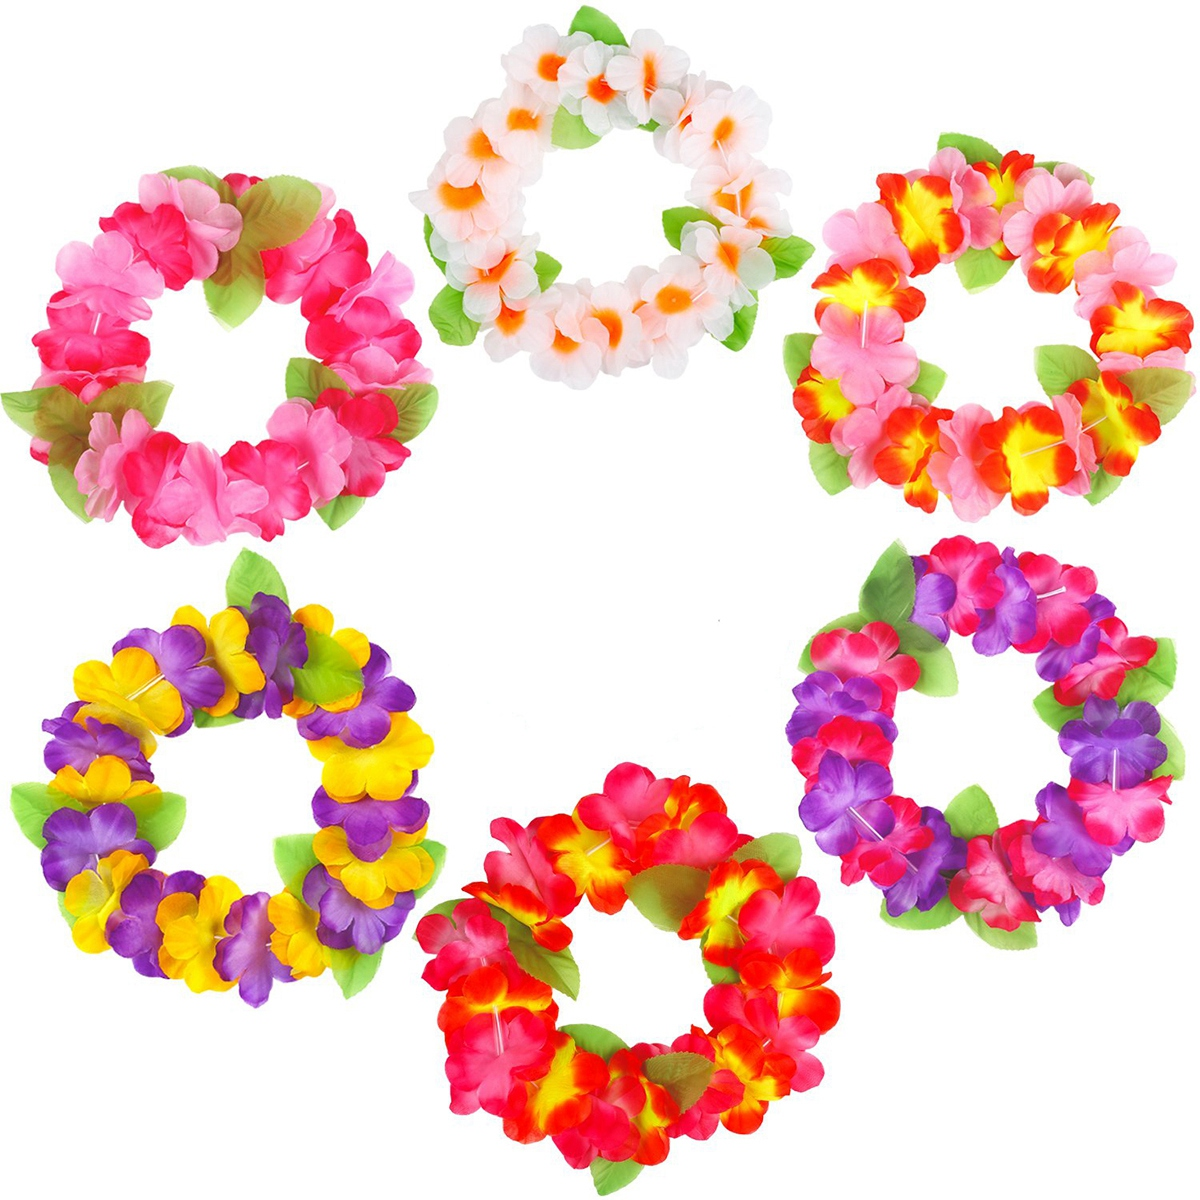 12PCS Hawaii Holiday Party Floral Headpiece Garland Headband Flower Crown Flower Headwear Head Wreath For Festival Photography